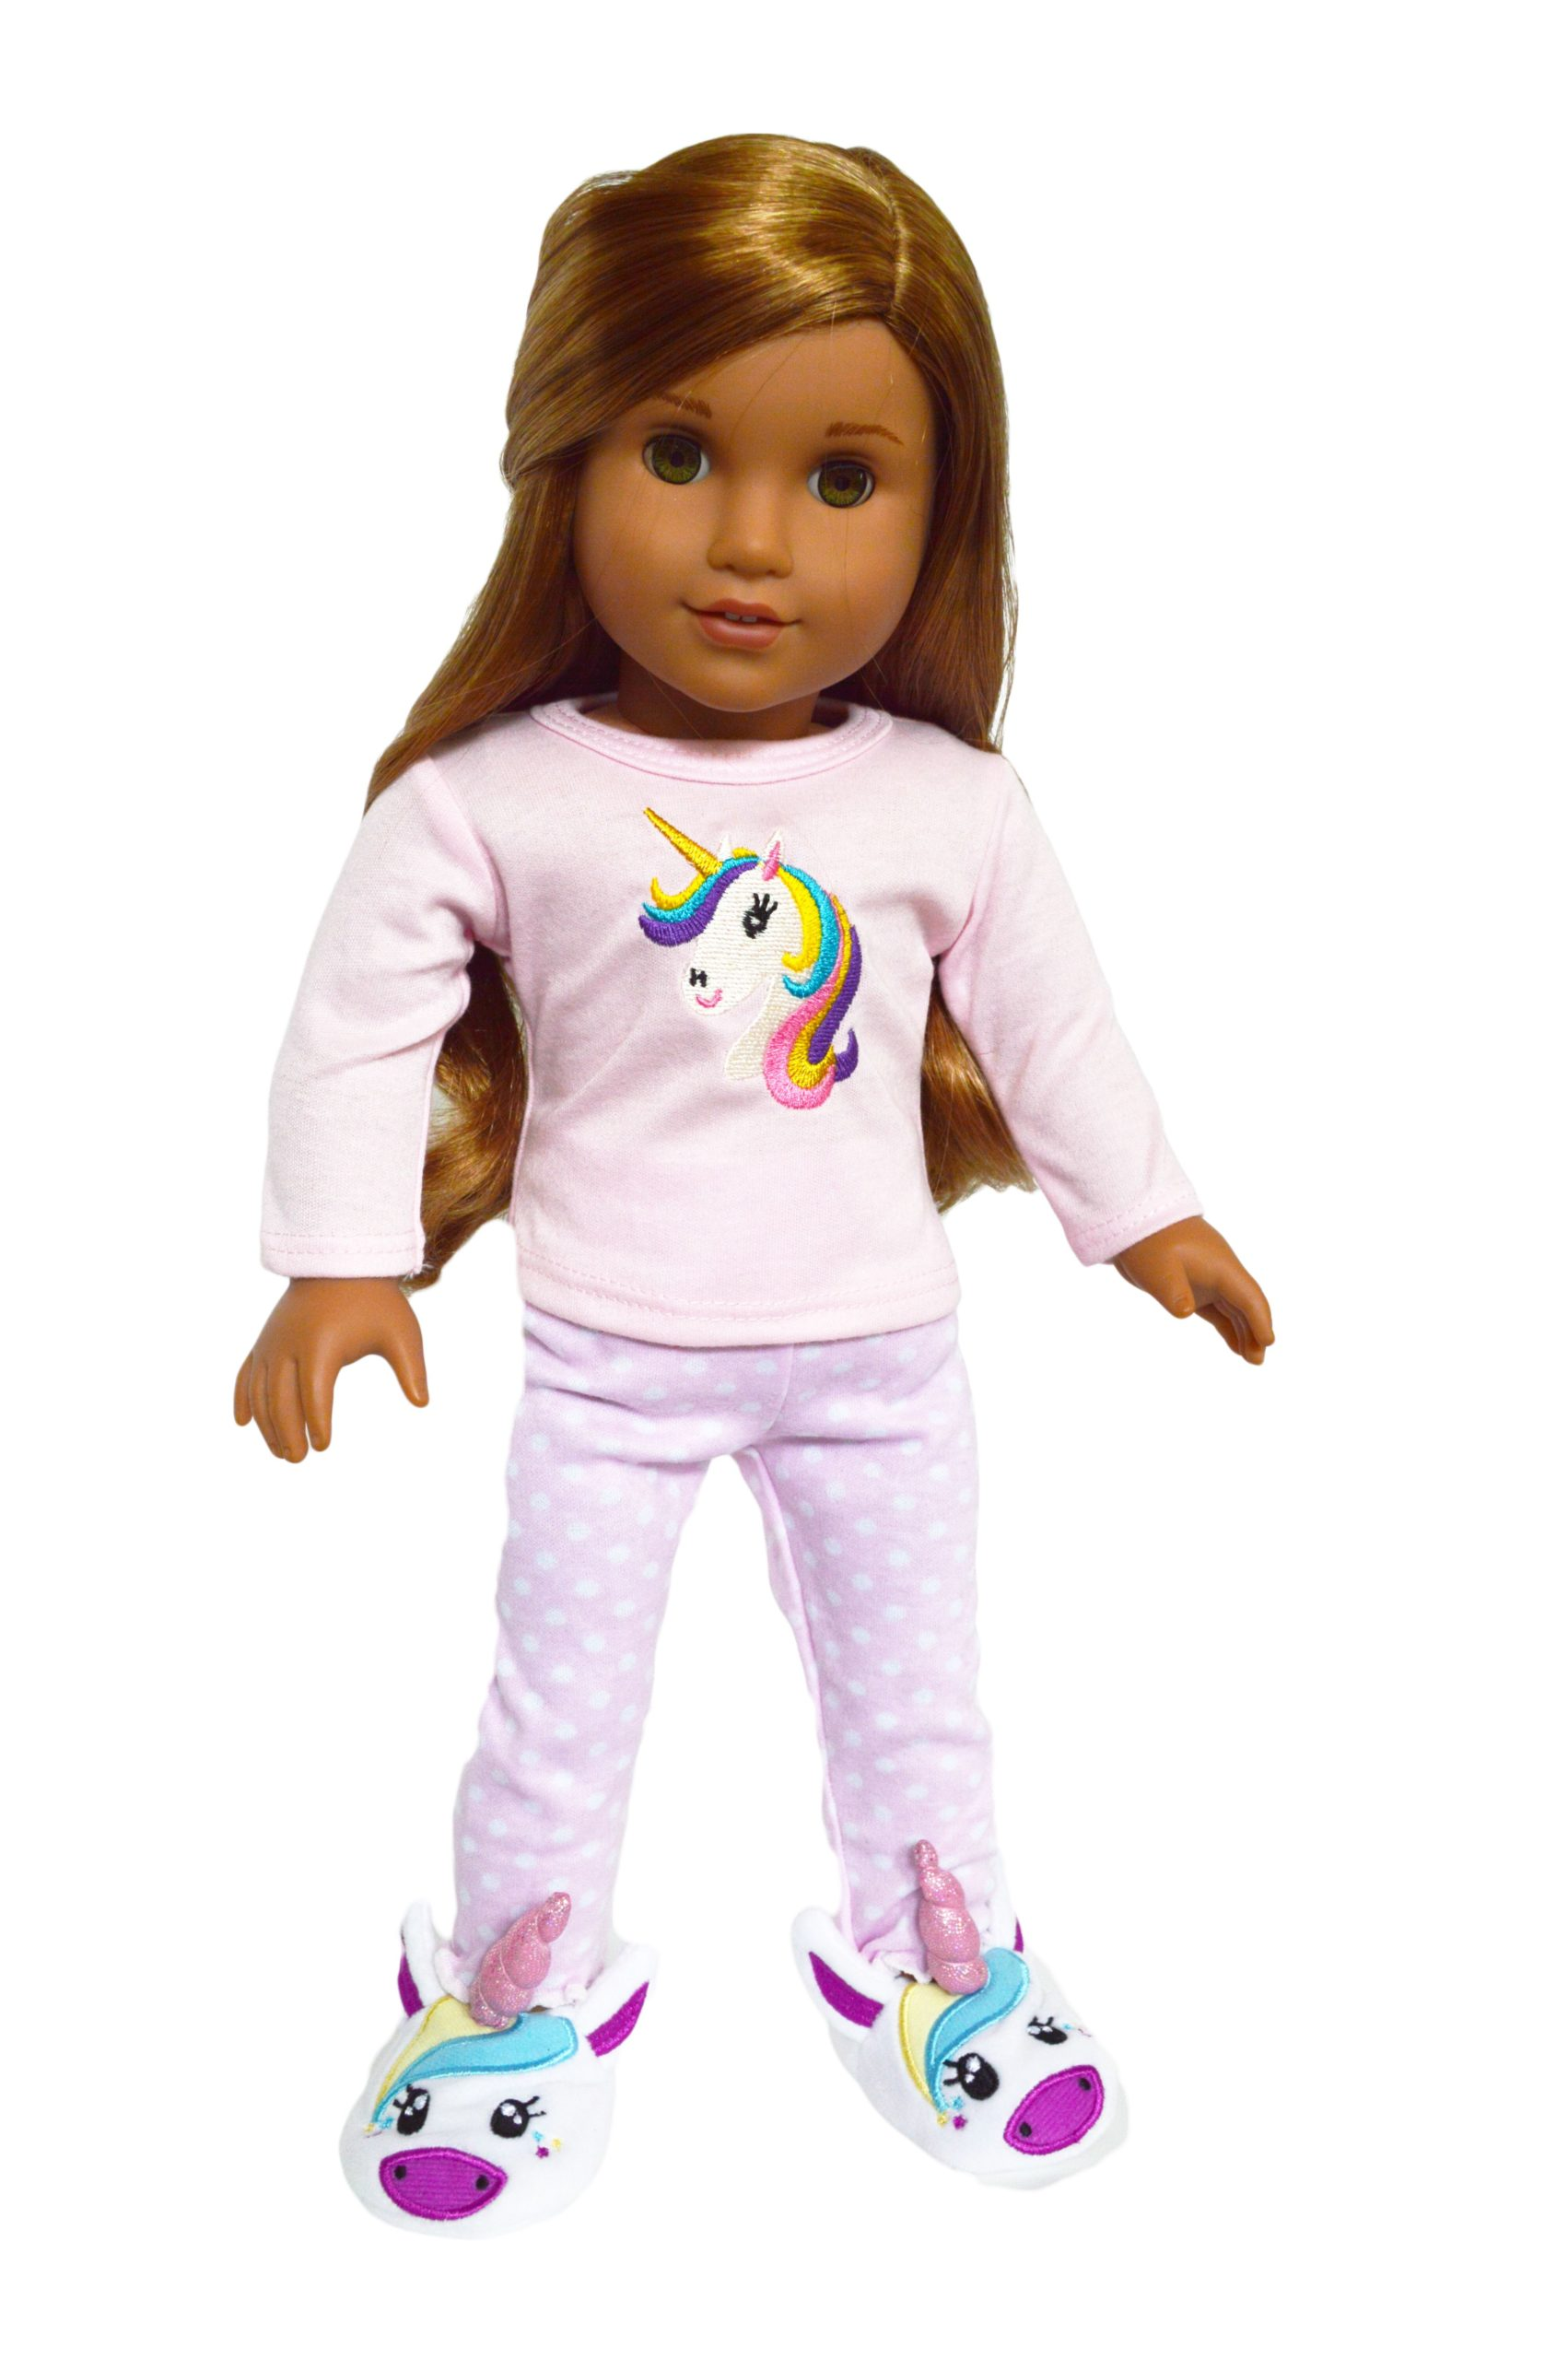 Unicorn Dreaming Pjs with Unicorn Slippers for American Girl Dolls, Our Generation Dolls and My Life